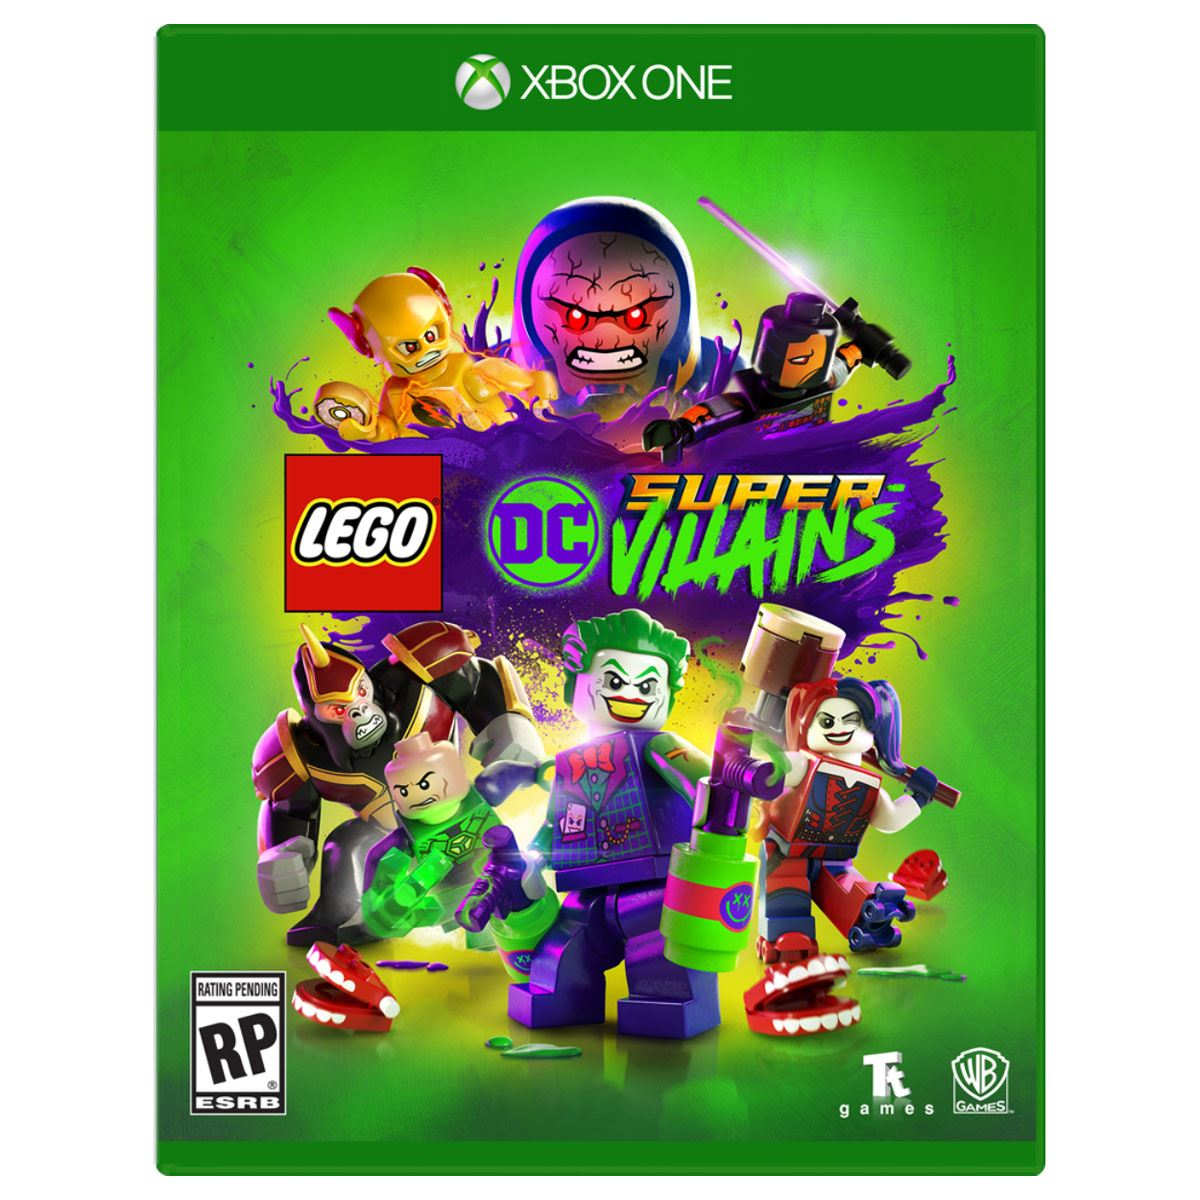 Xbox One Lego DC Supervillains